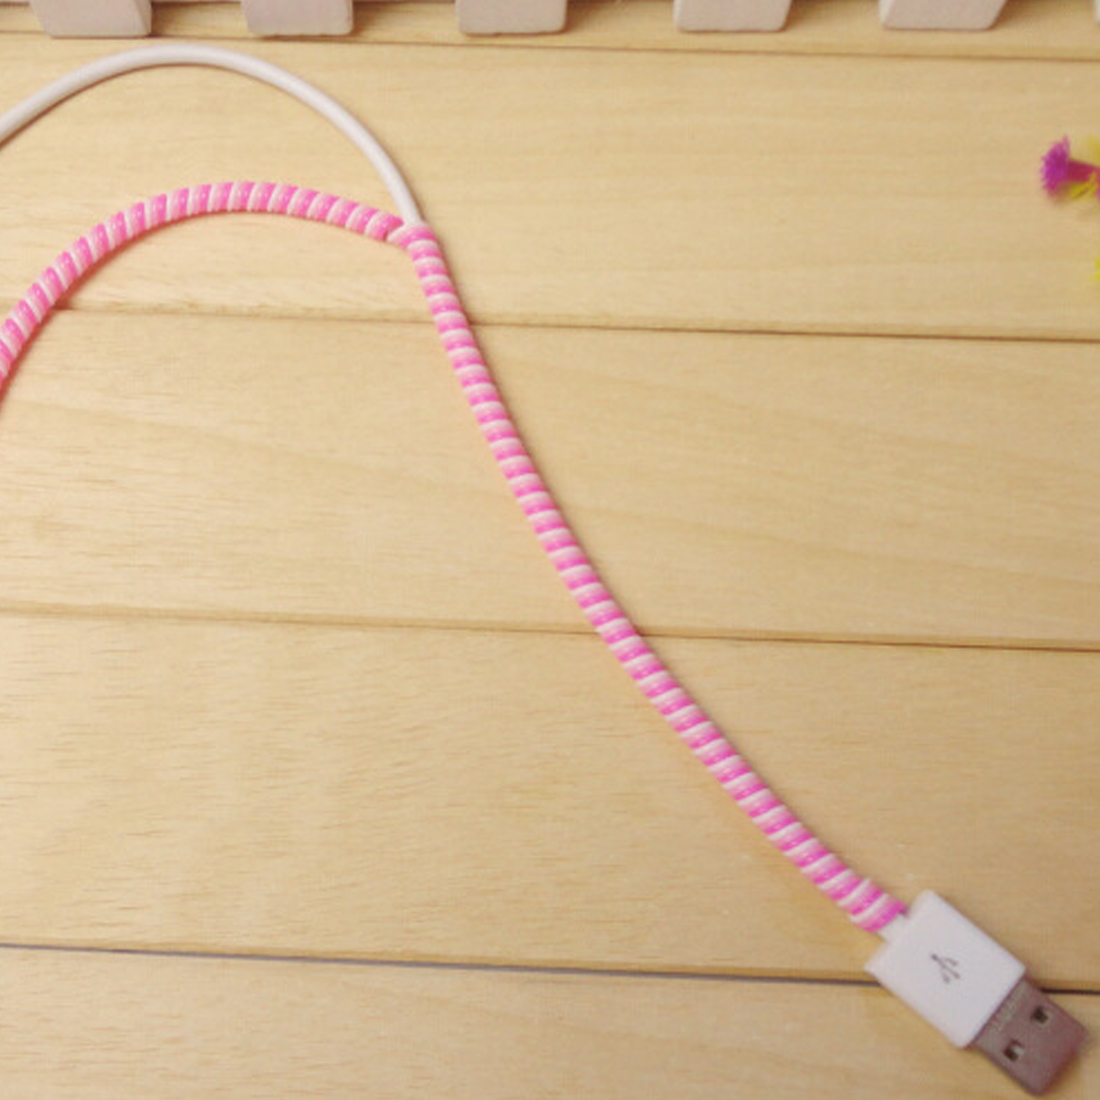 Cable Winder Clever 1.5m Mix Color Phone Wire Cord Rope Protector Usb Charging Cable Bobbin Winder Data Line Earphone Cover Suit Spring Sleeve Twine